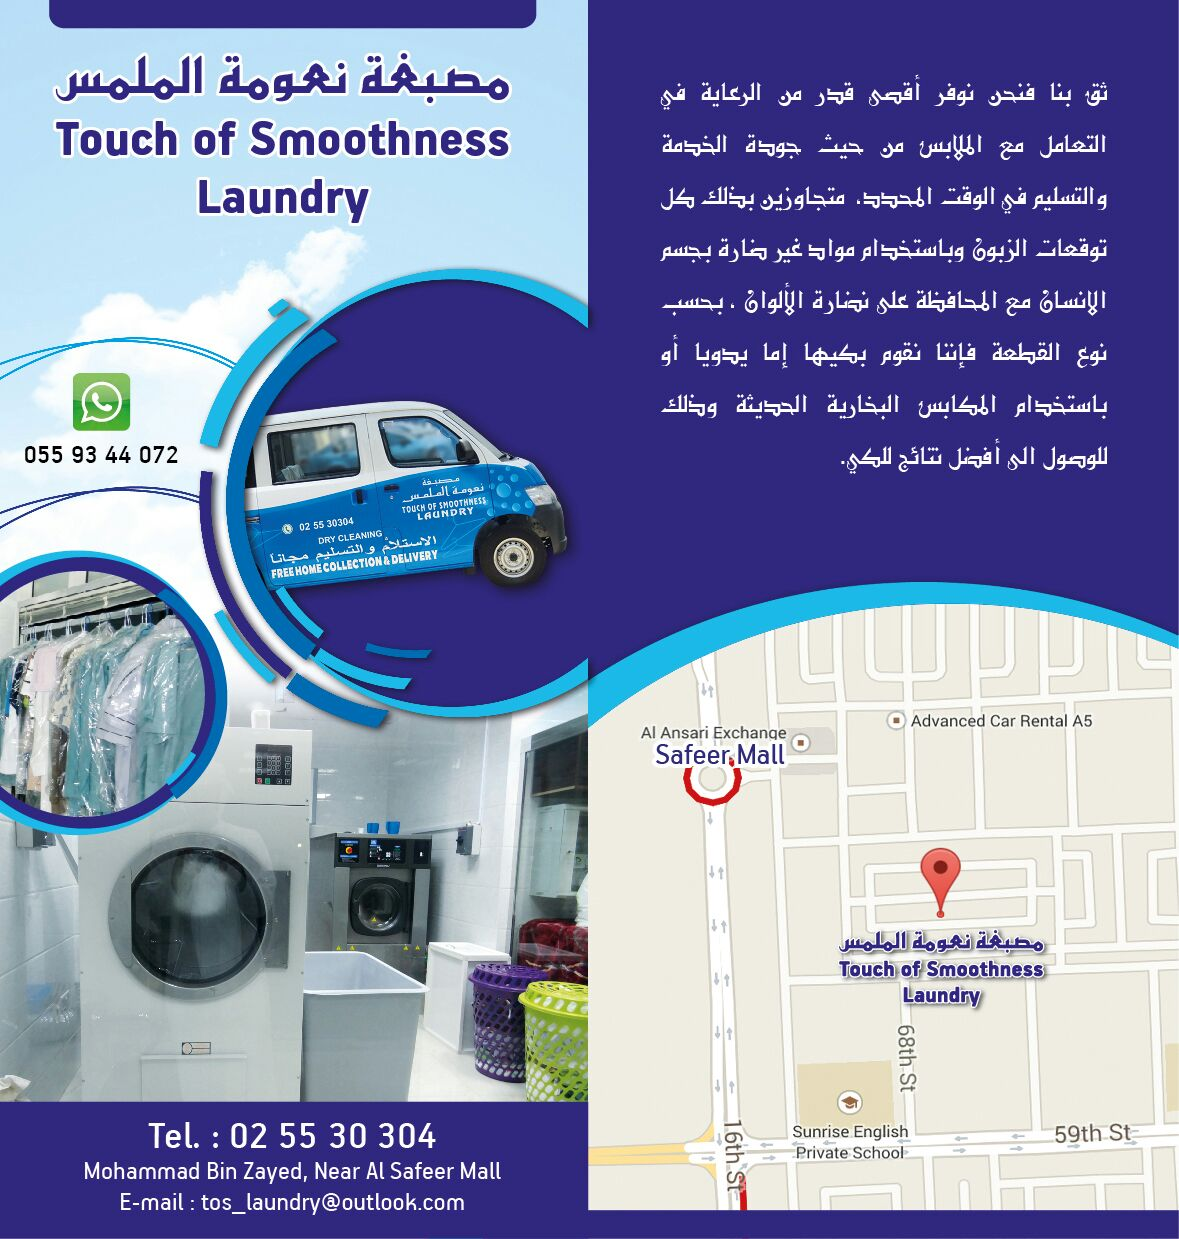 Touch of smoothness laundry